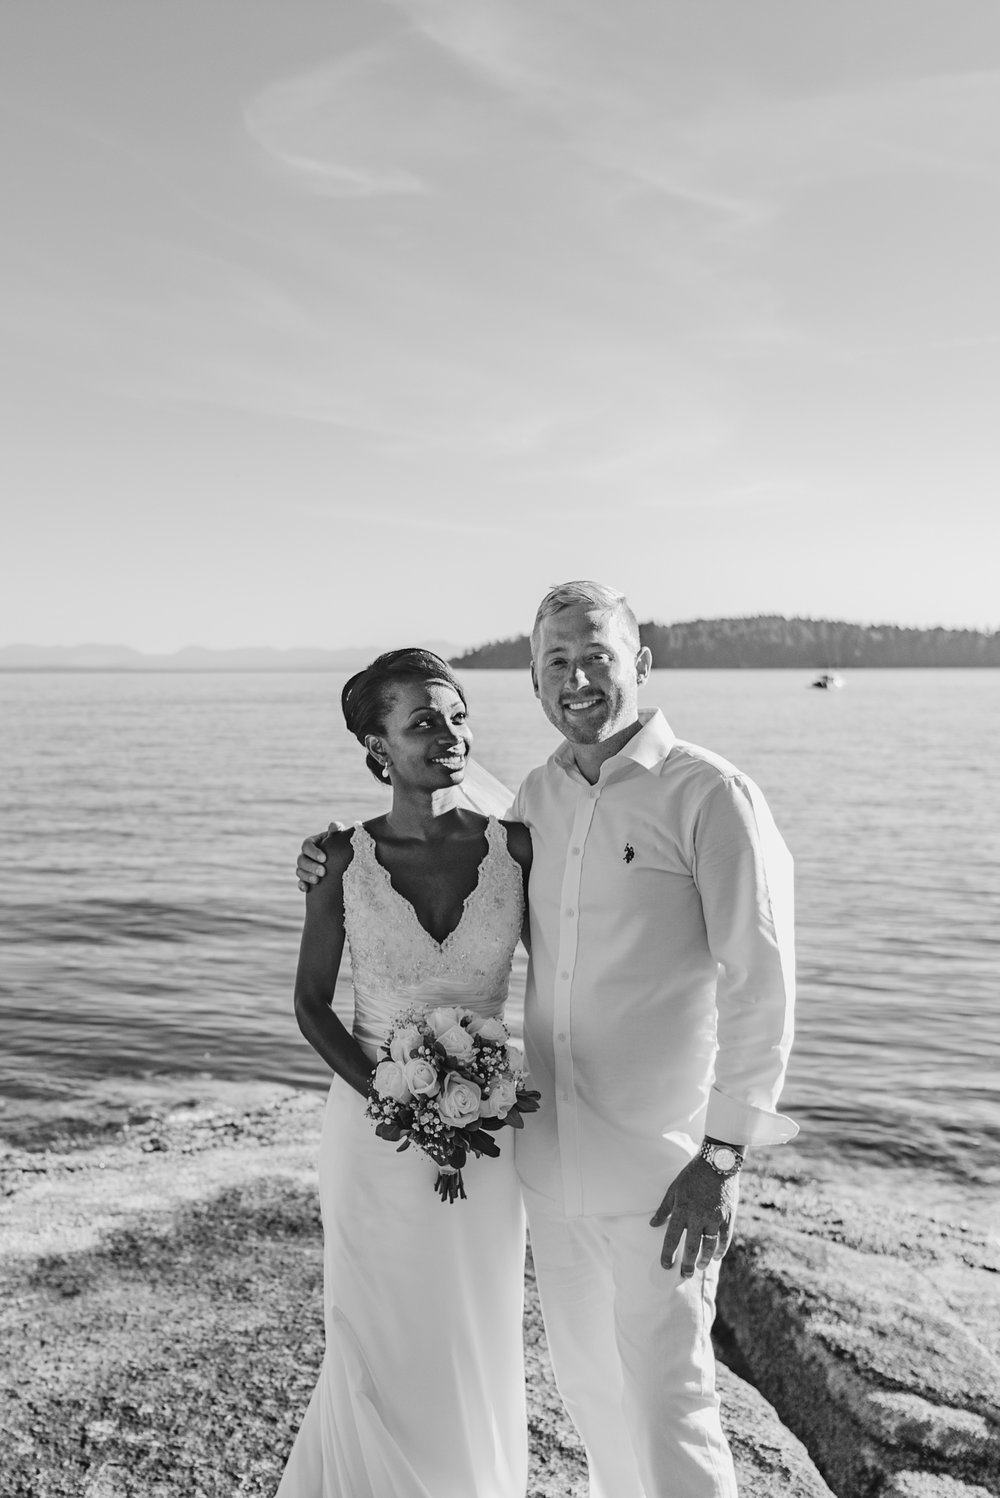 Laura Olson Photography - Sunshine Coast BC Photographer - Daniel and Milena Ceremony Summer 2016-2344.jpg